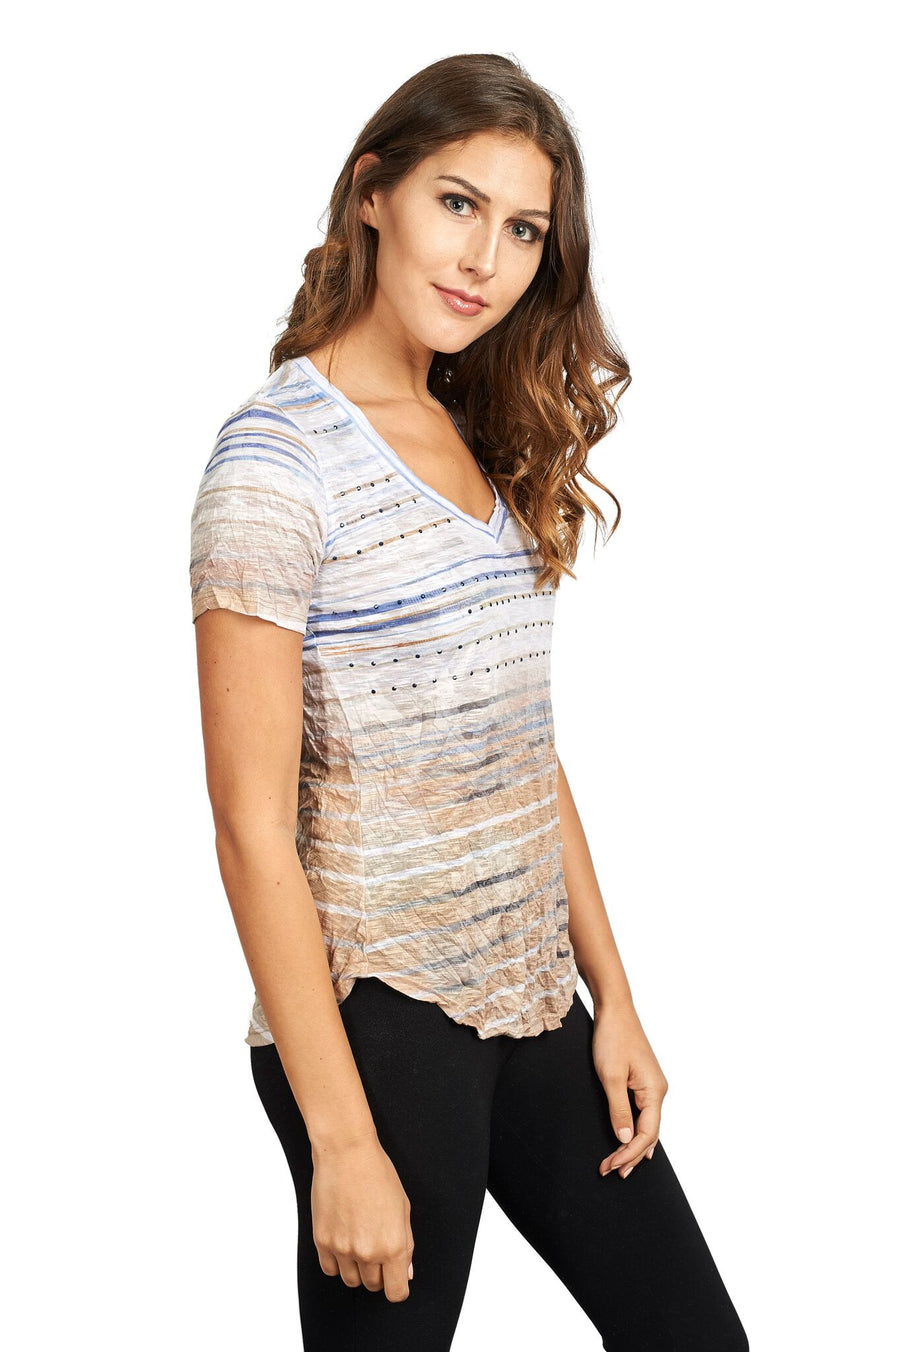 V Neck Short Sleeve Summer Tee Shirt with Crystals